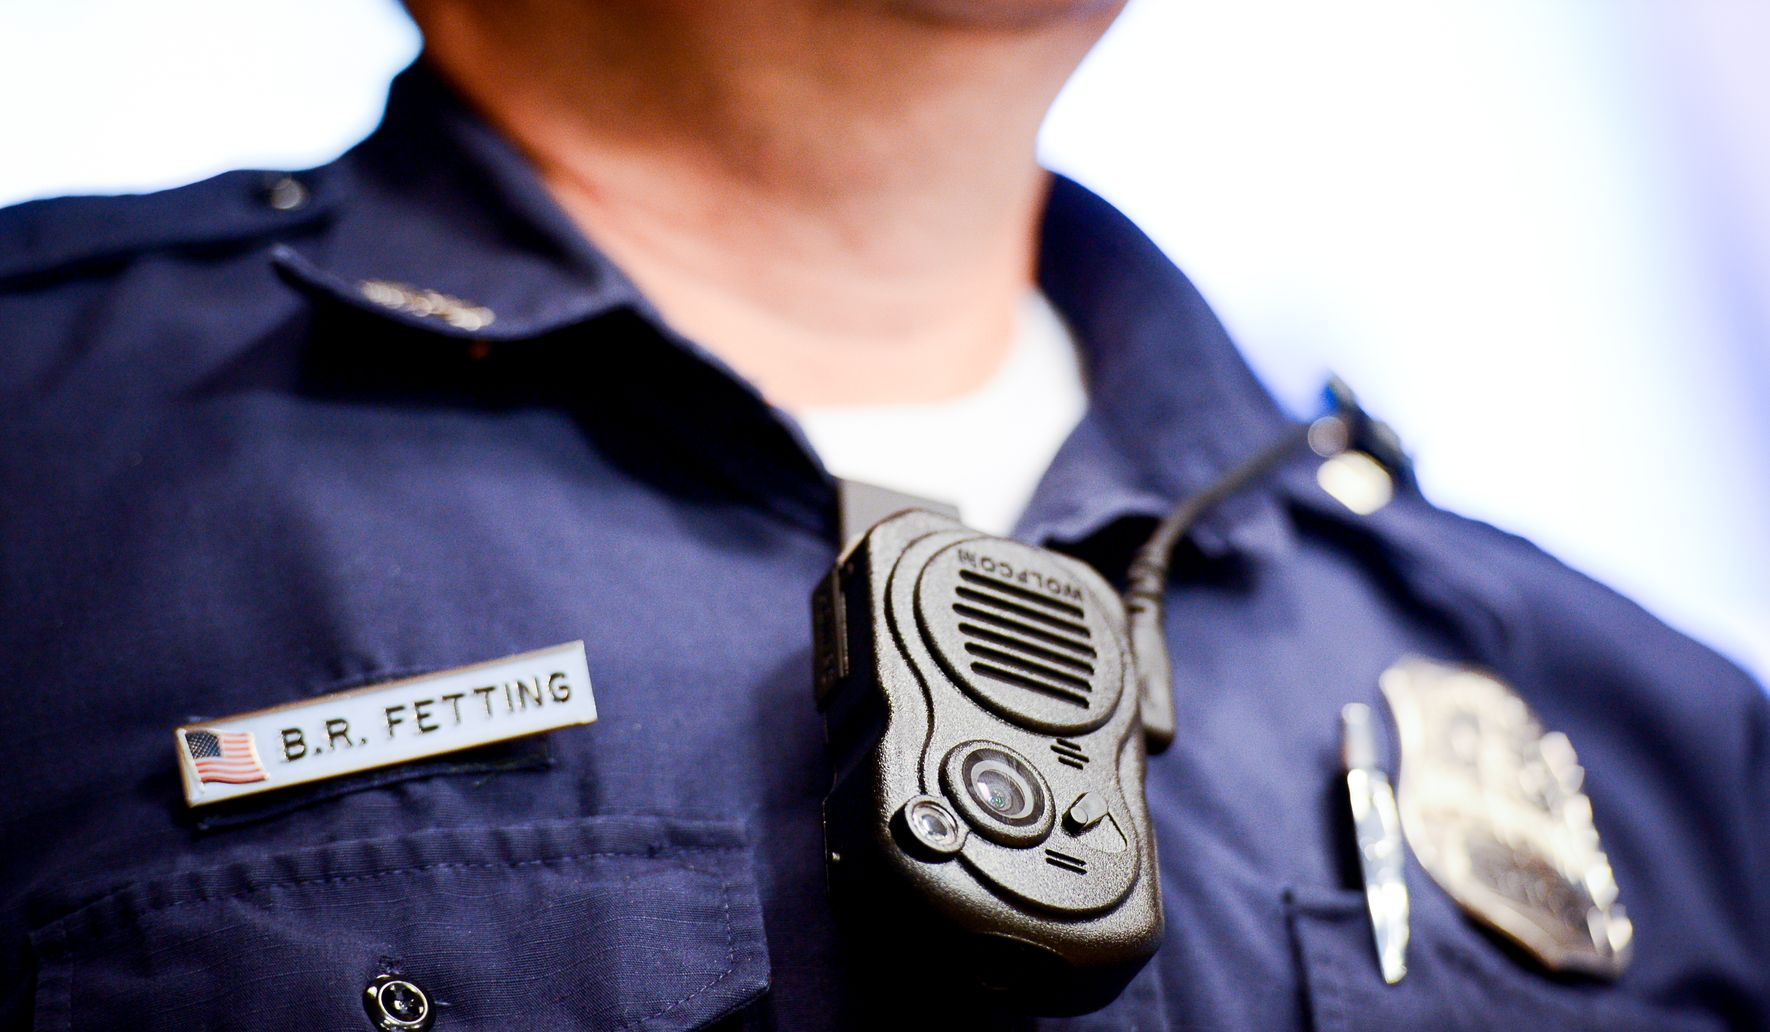 D.C. police's refusal to release body-camera footage blasted